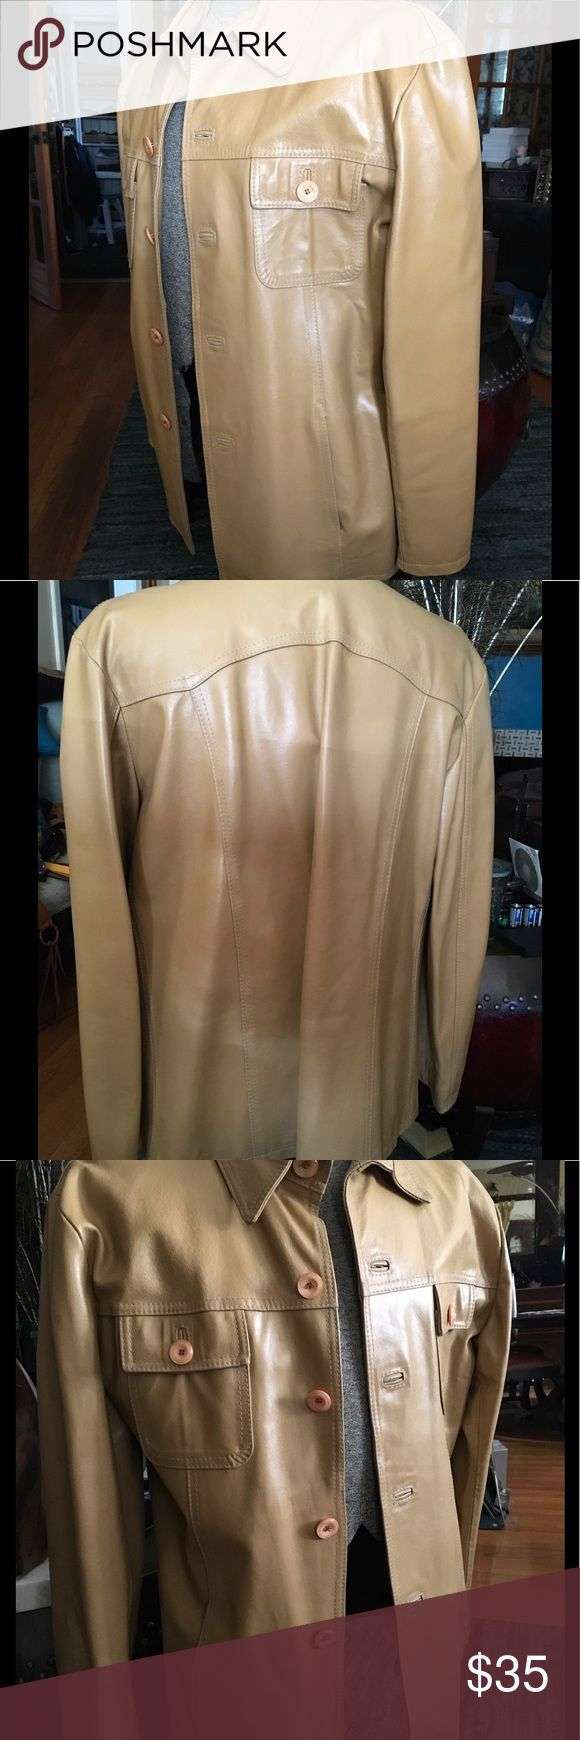 Men's Vintage Camel Leather Jacket Vintage top stitch Genuine leather jacket. Button flap chest pockets. Slant pockets at waist. Satin lined. Italian made. Size 54. Comparable to a size 44 or XL Jackets & Coats